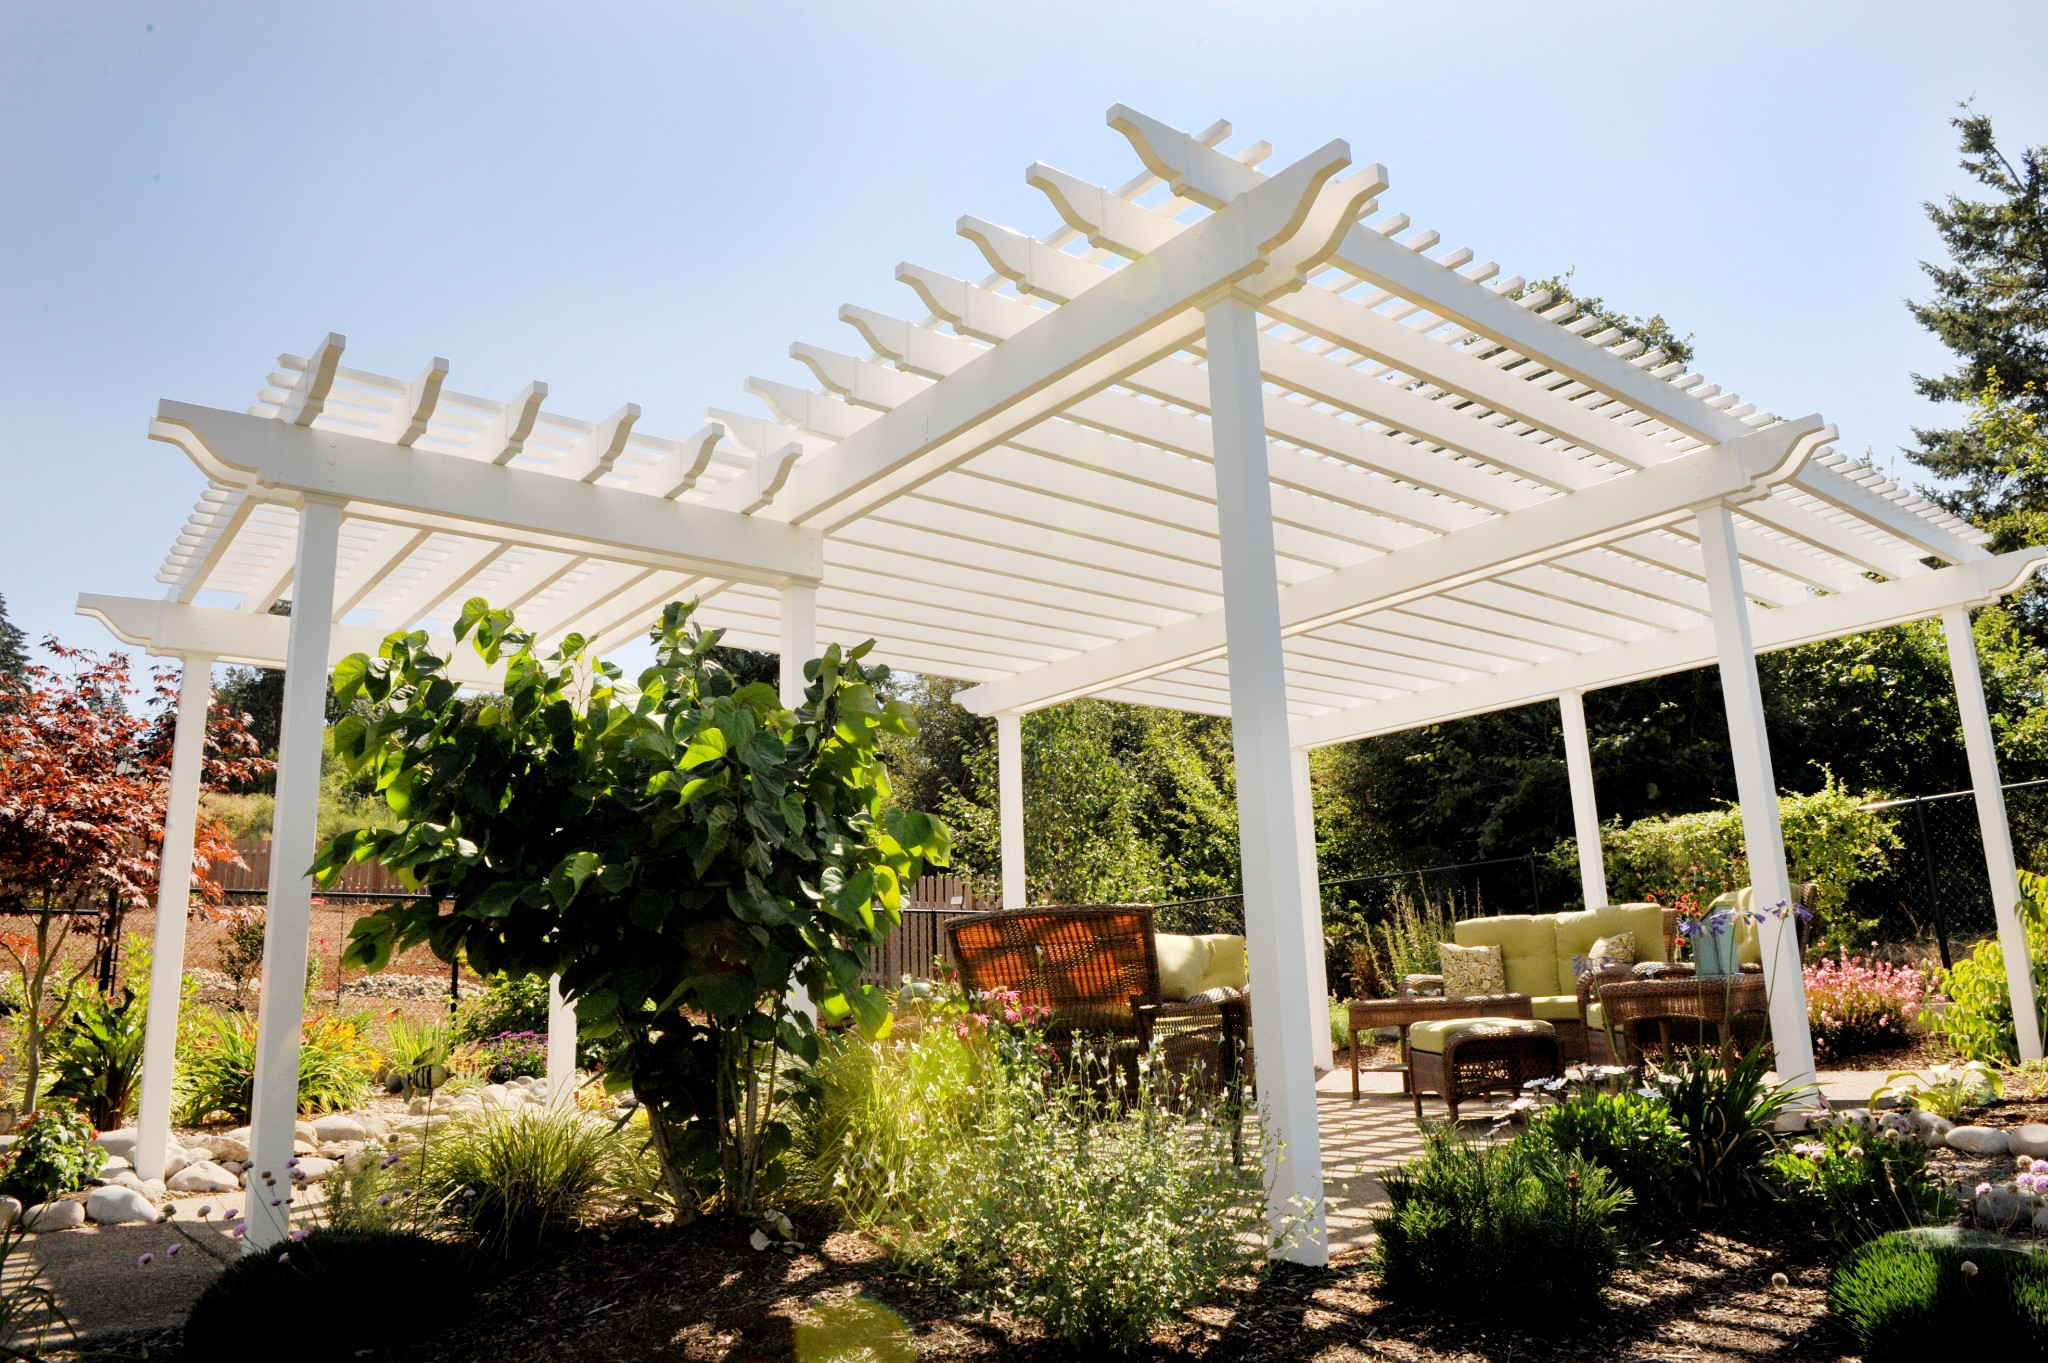 Pergola covers create your very own secret garden landscaping portland oregon desantis - Waterdichte pergola cover ...